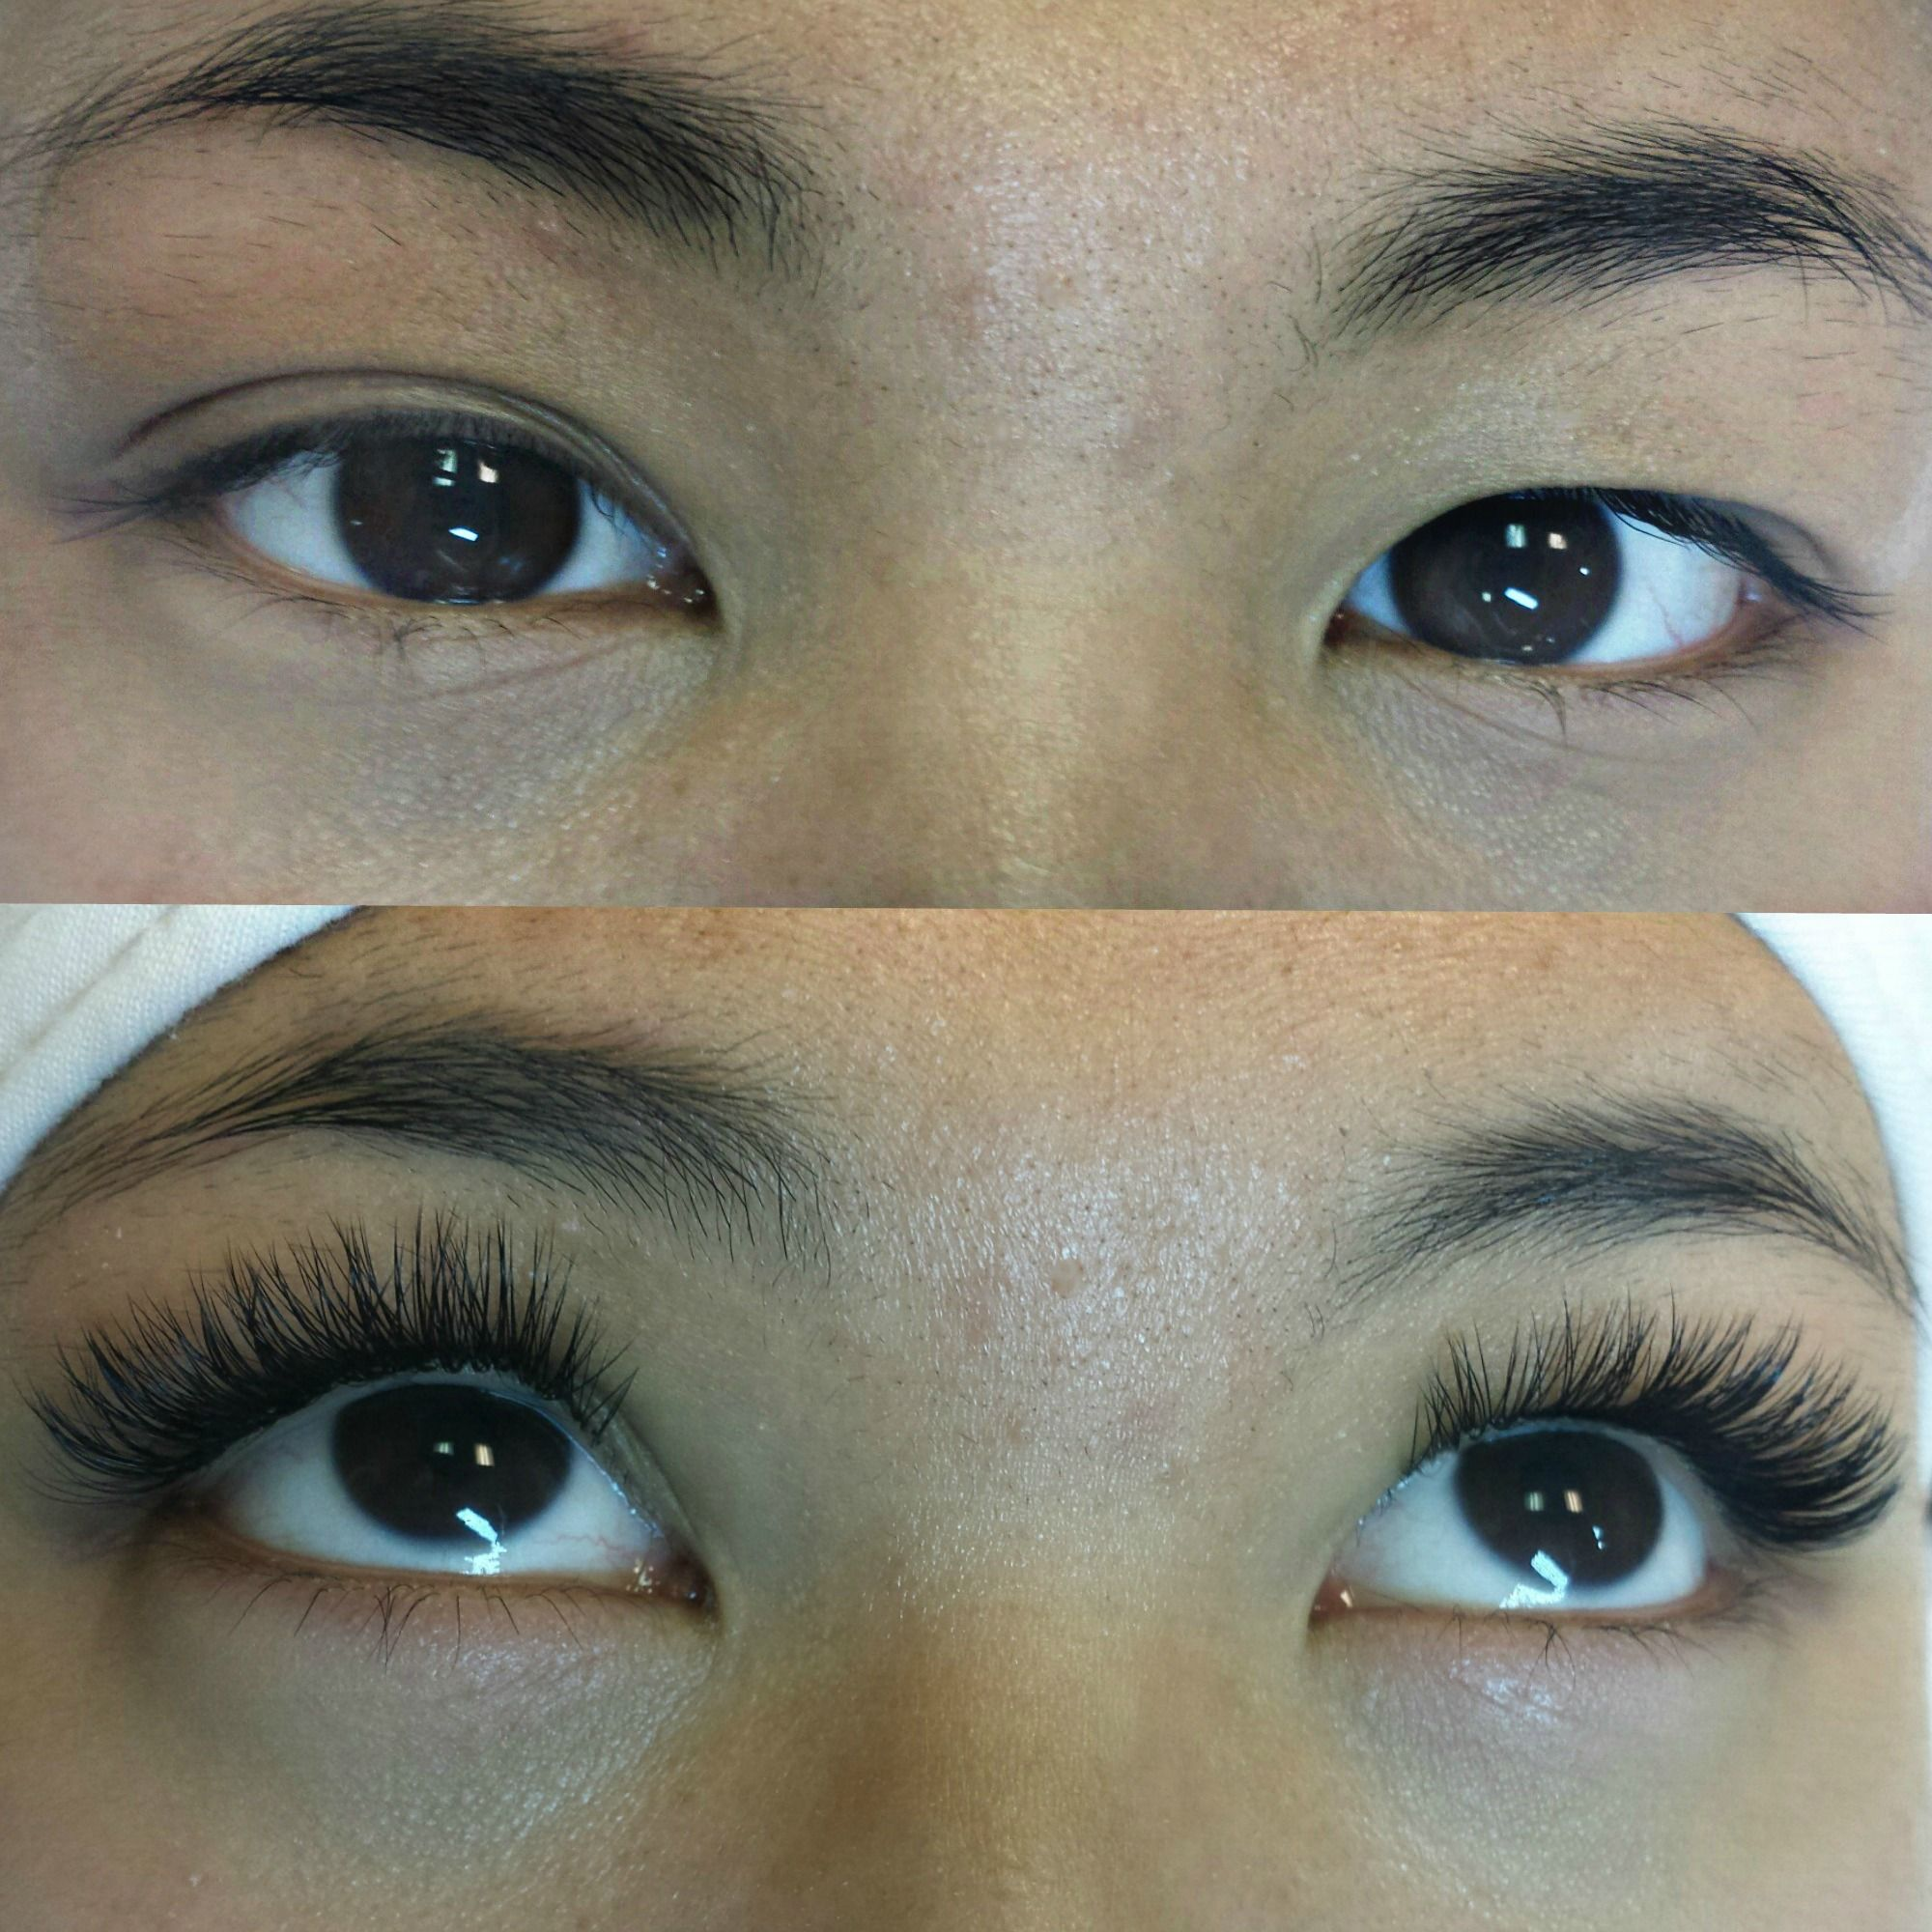 Classic 23 D Lashes Done By Our Most Awesome Trainer Chan In